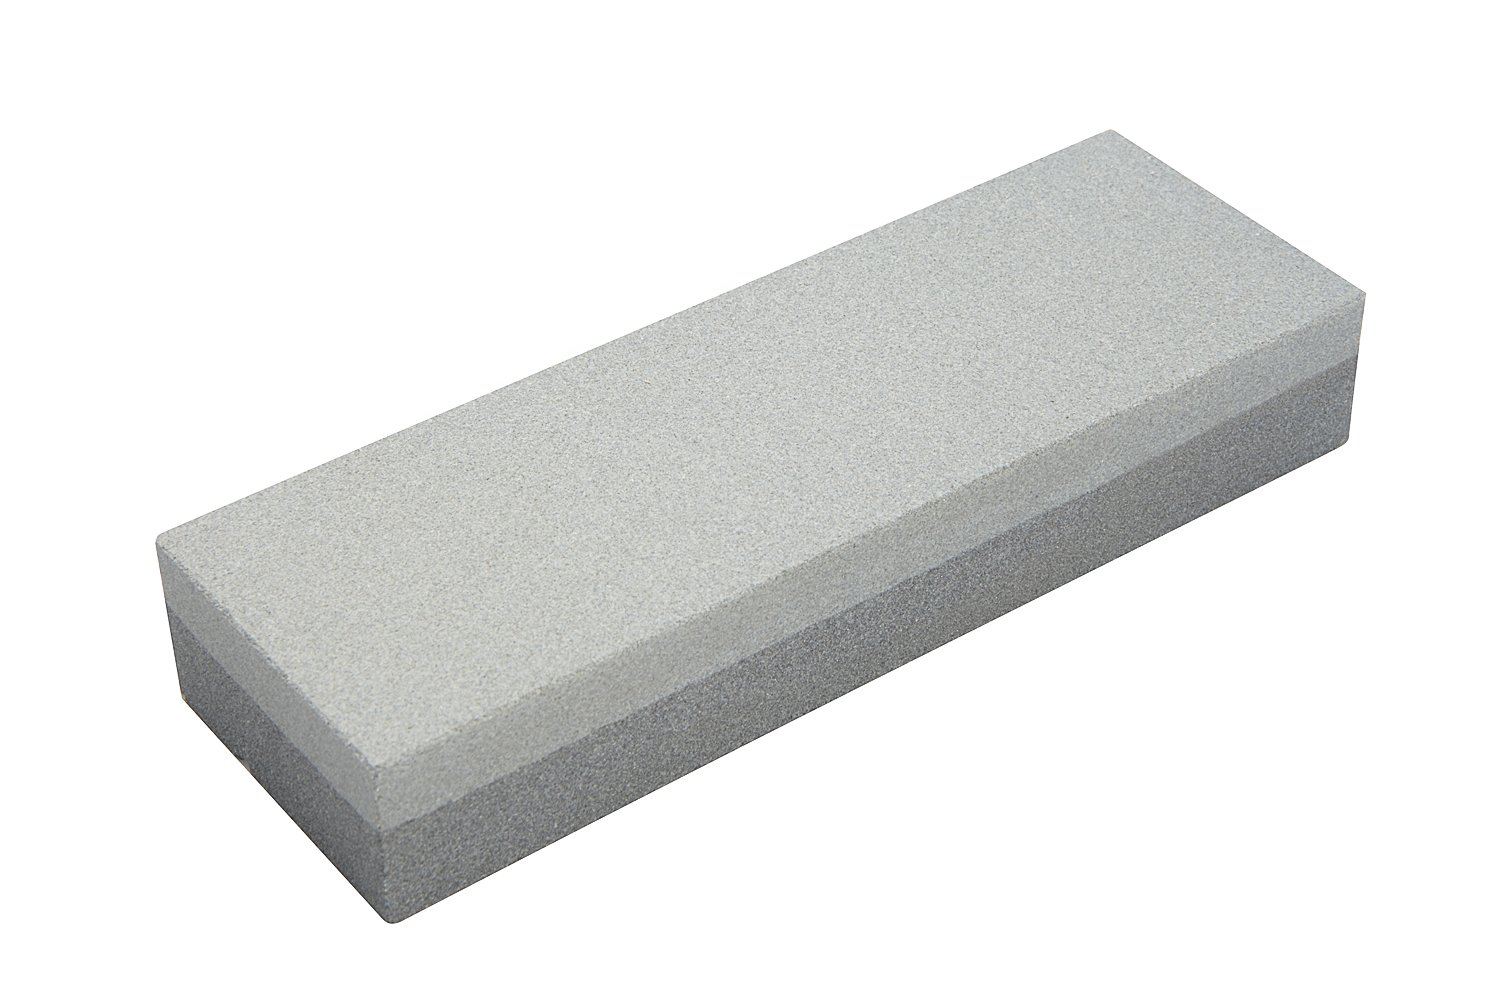 Bora Fine/Coarse Combination Sharpening Stone